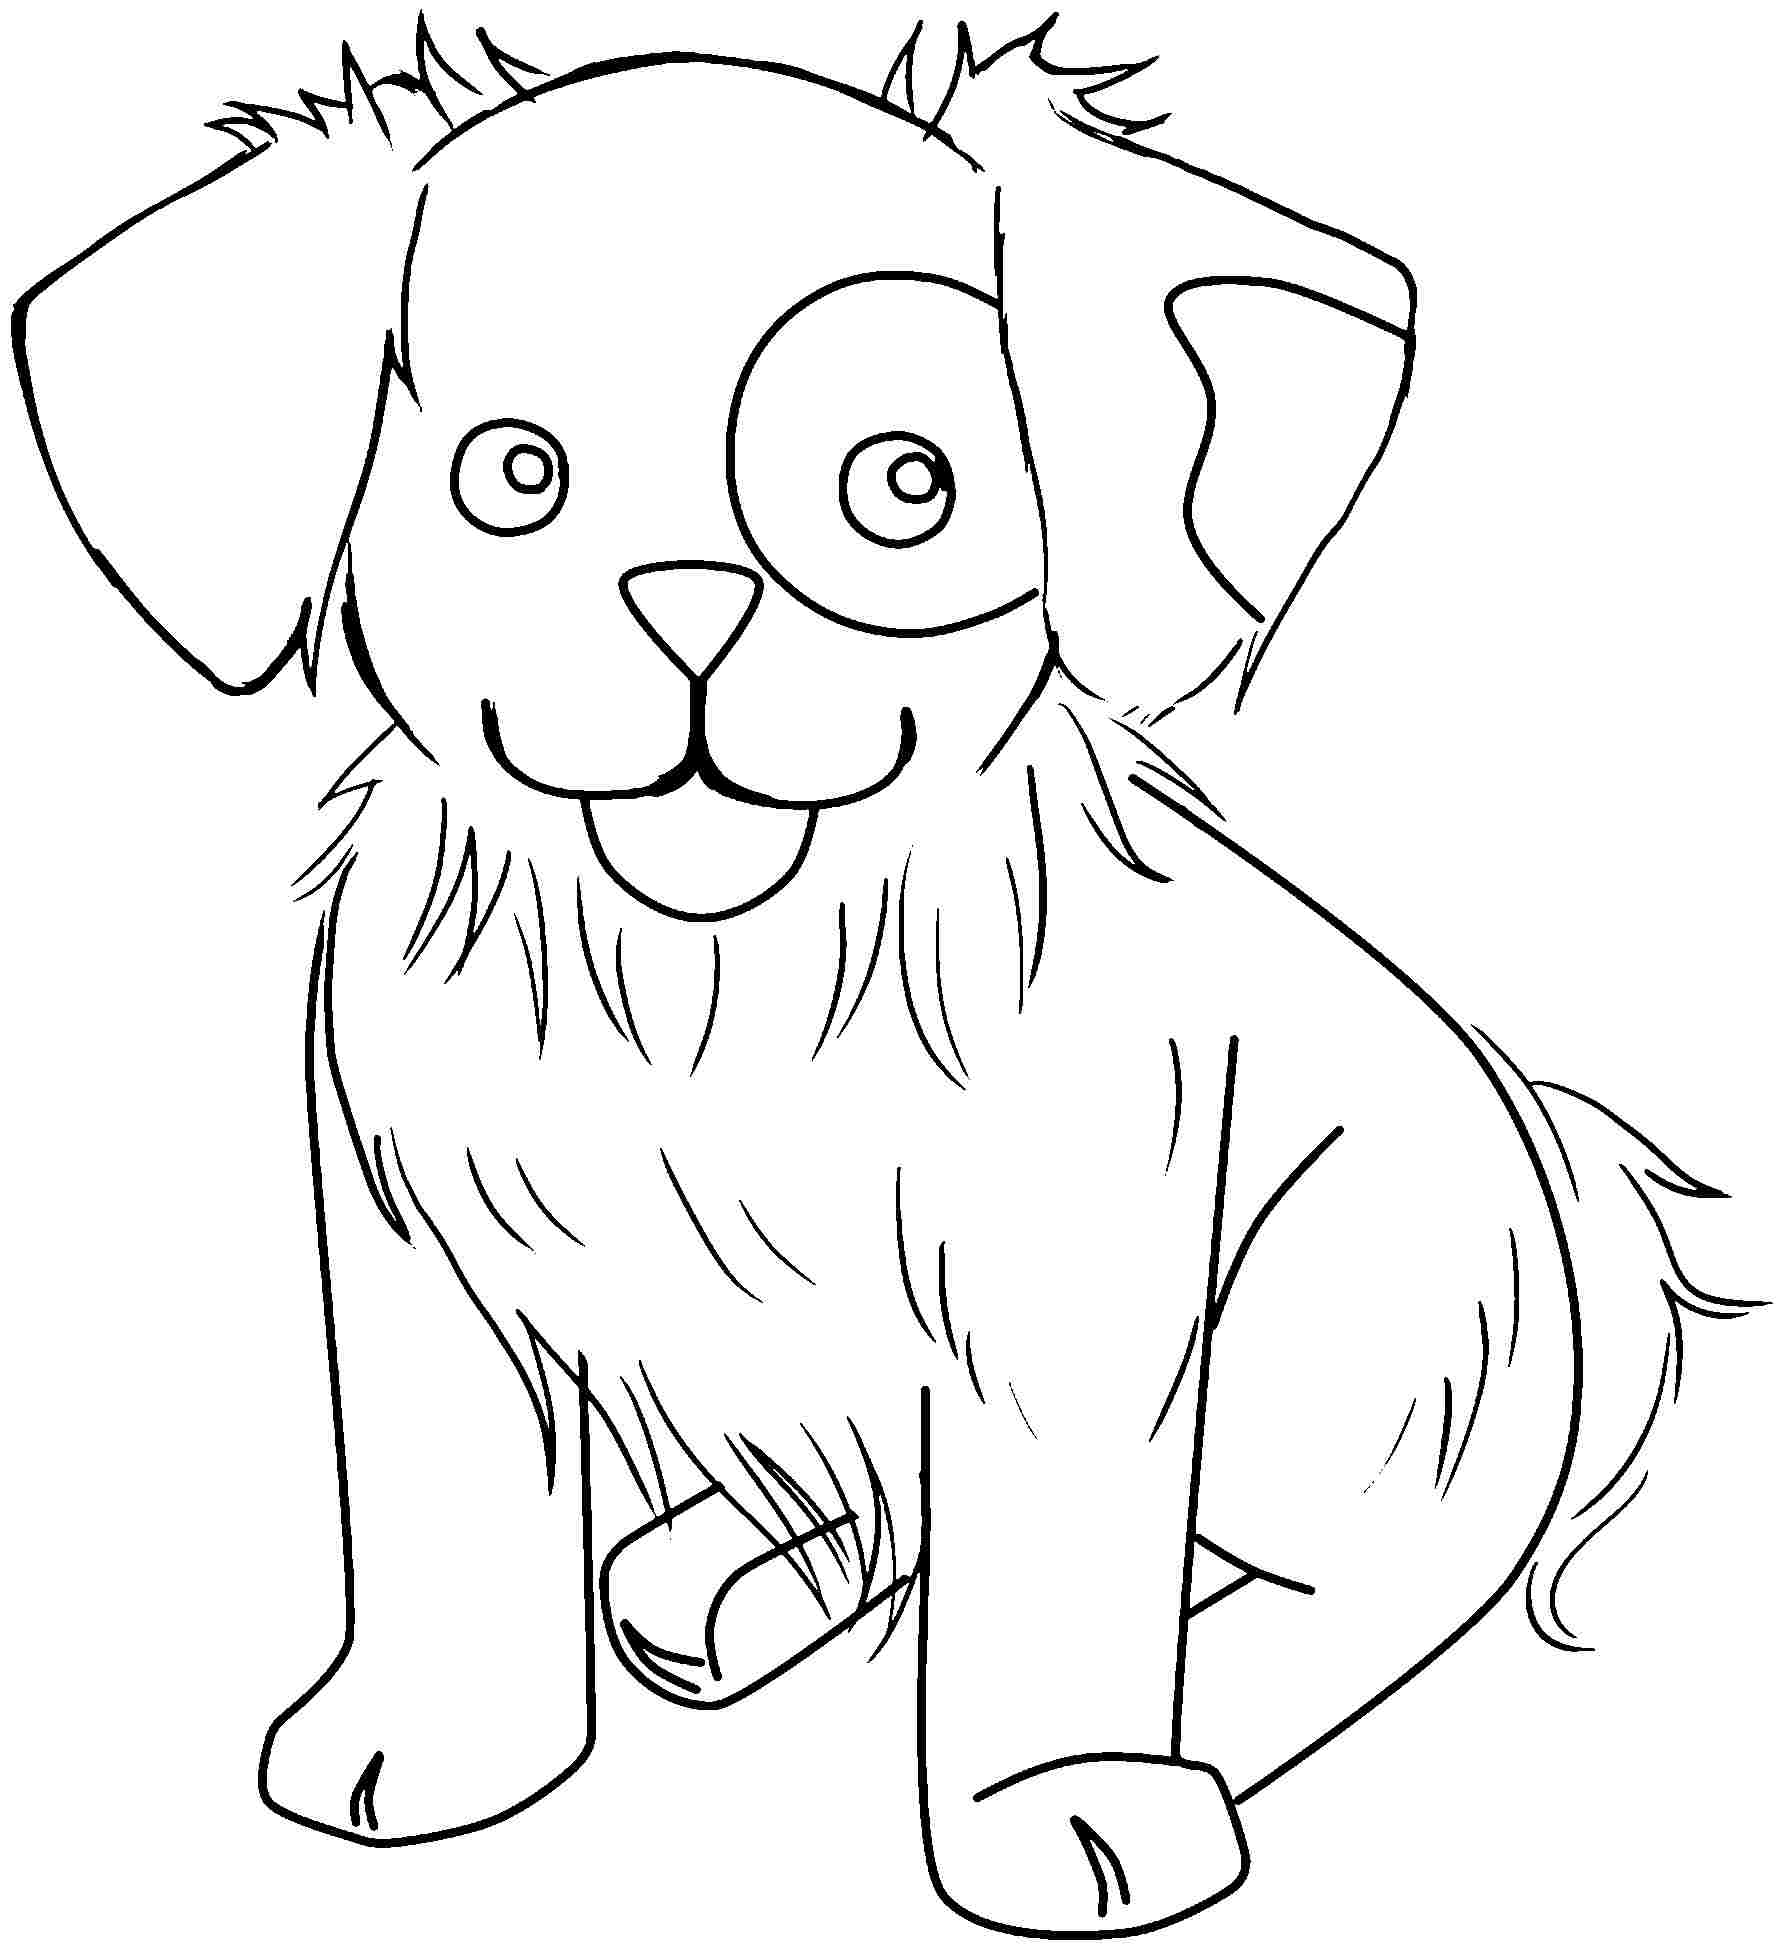 print cute animal coloring pages - photo#31